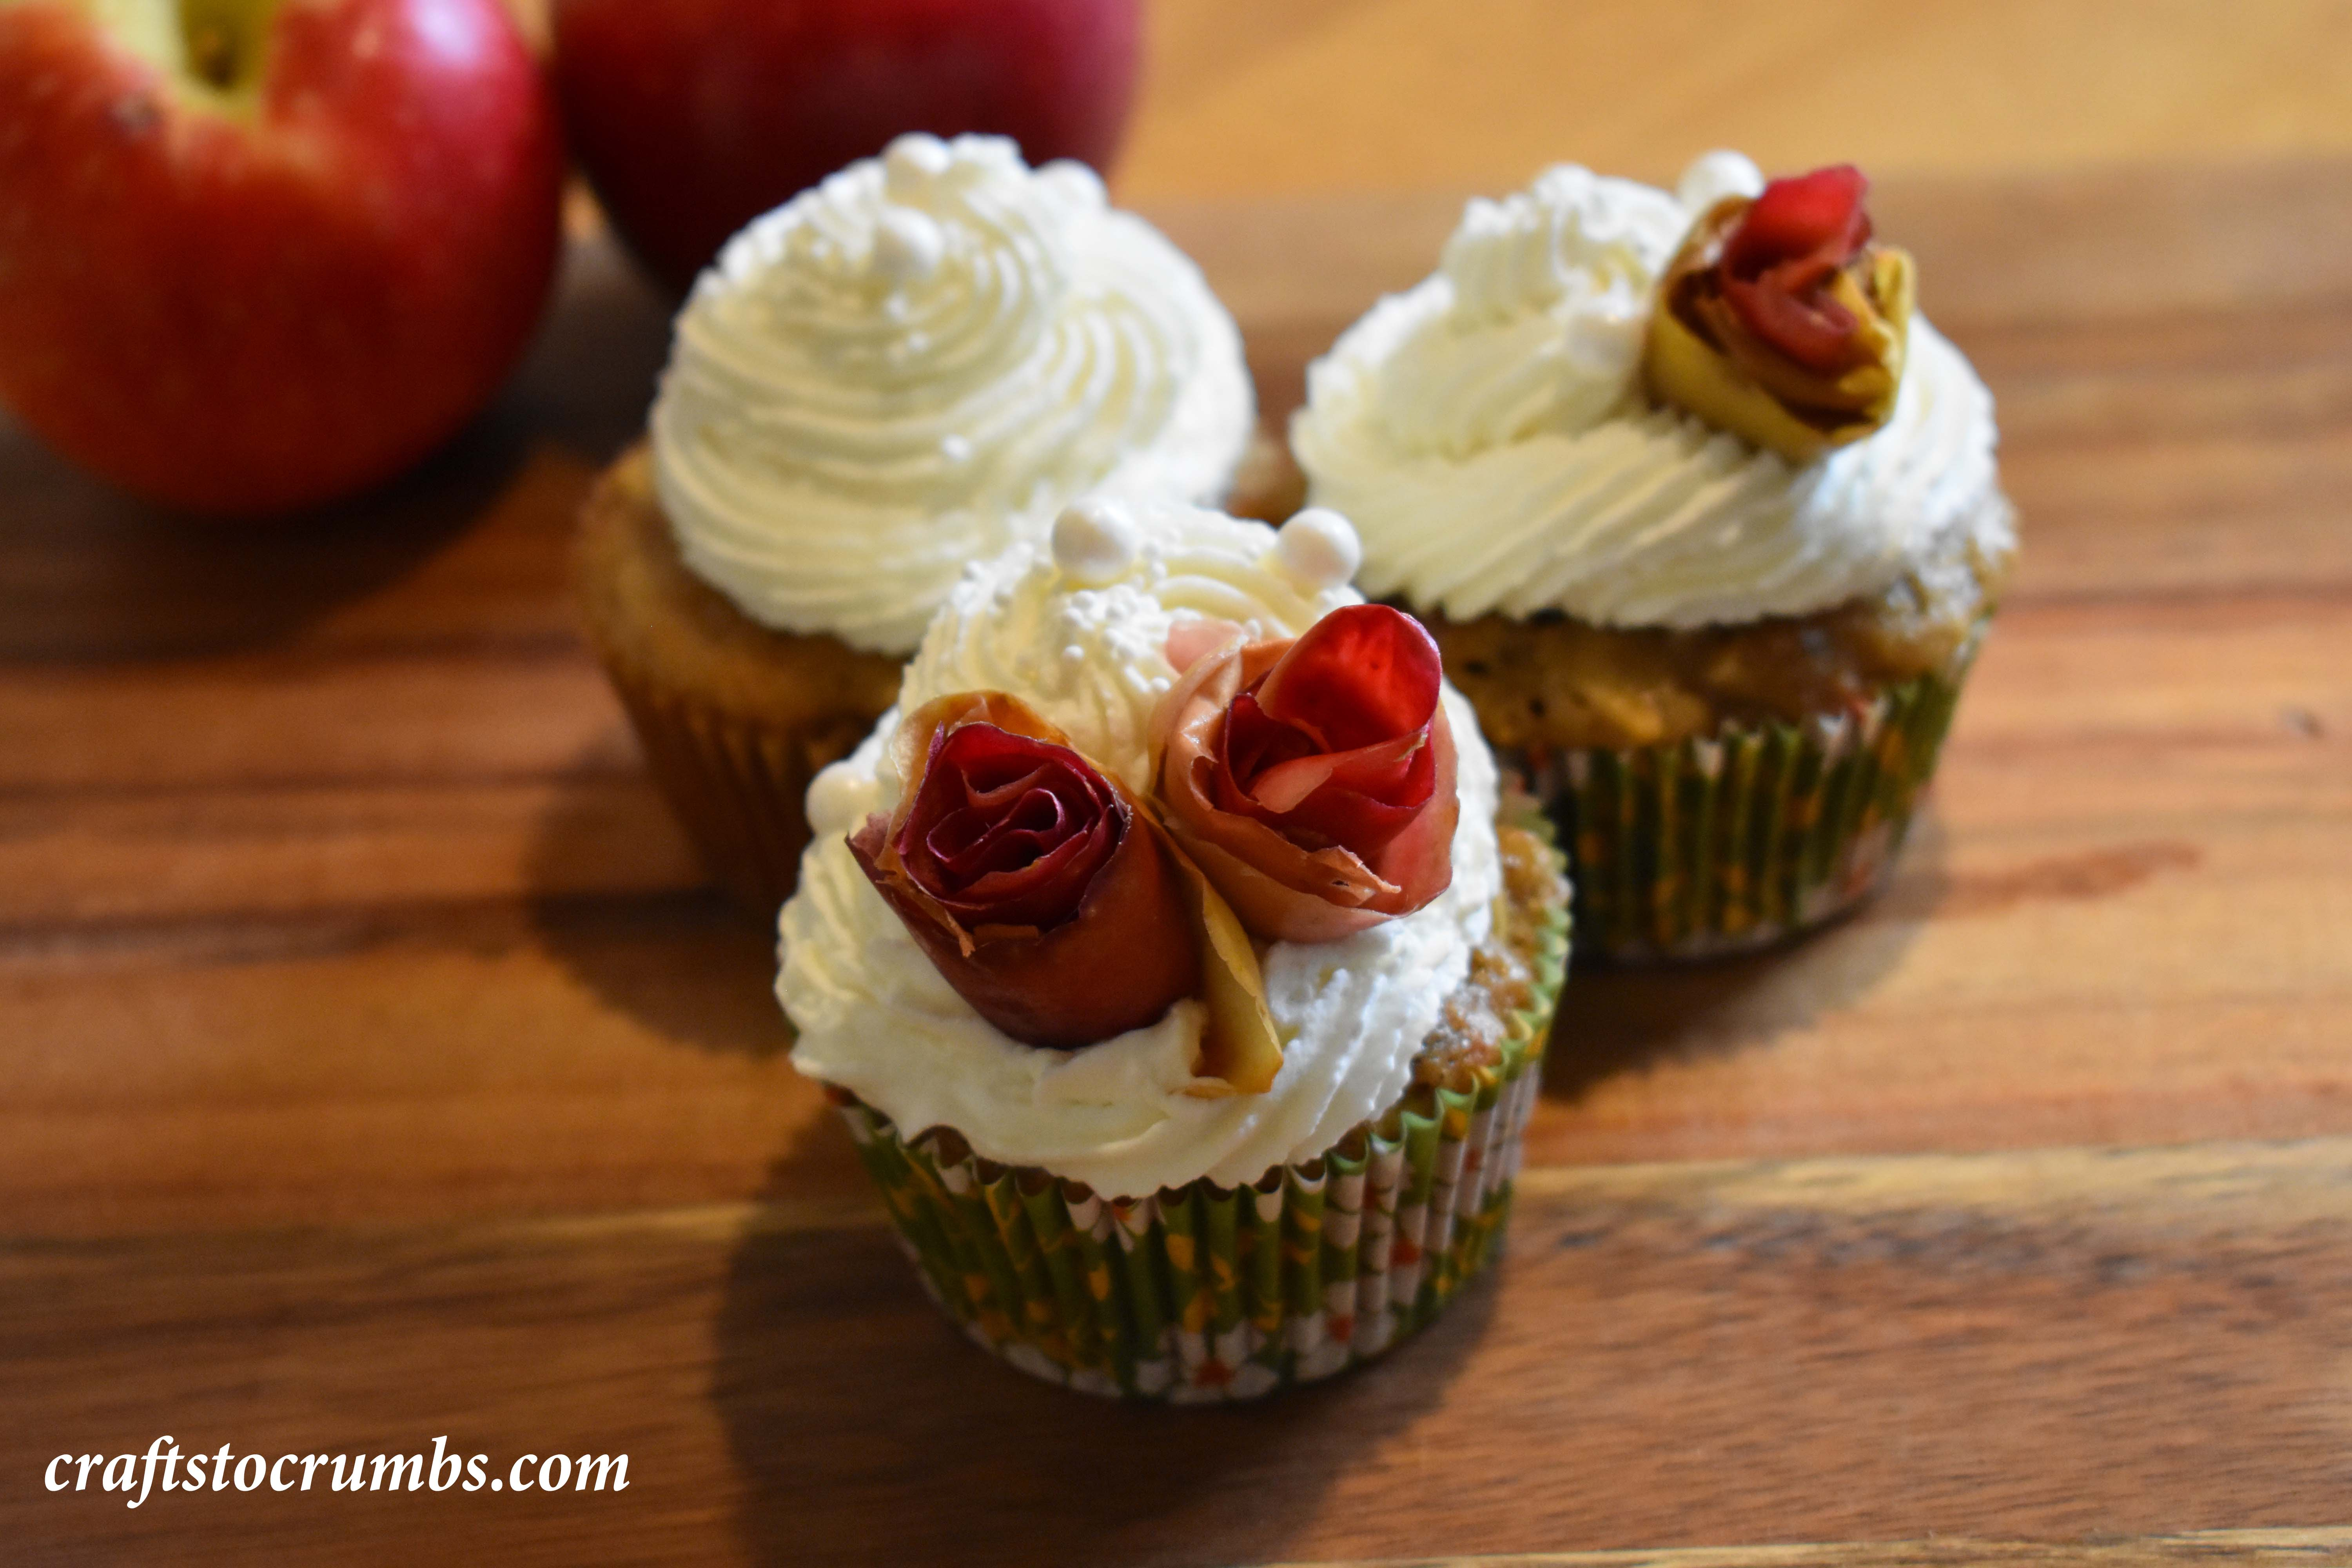 Crafts to Crumbs Apple Cupcakes